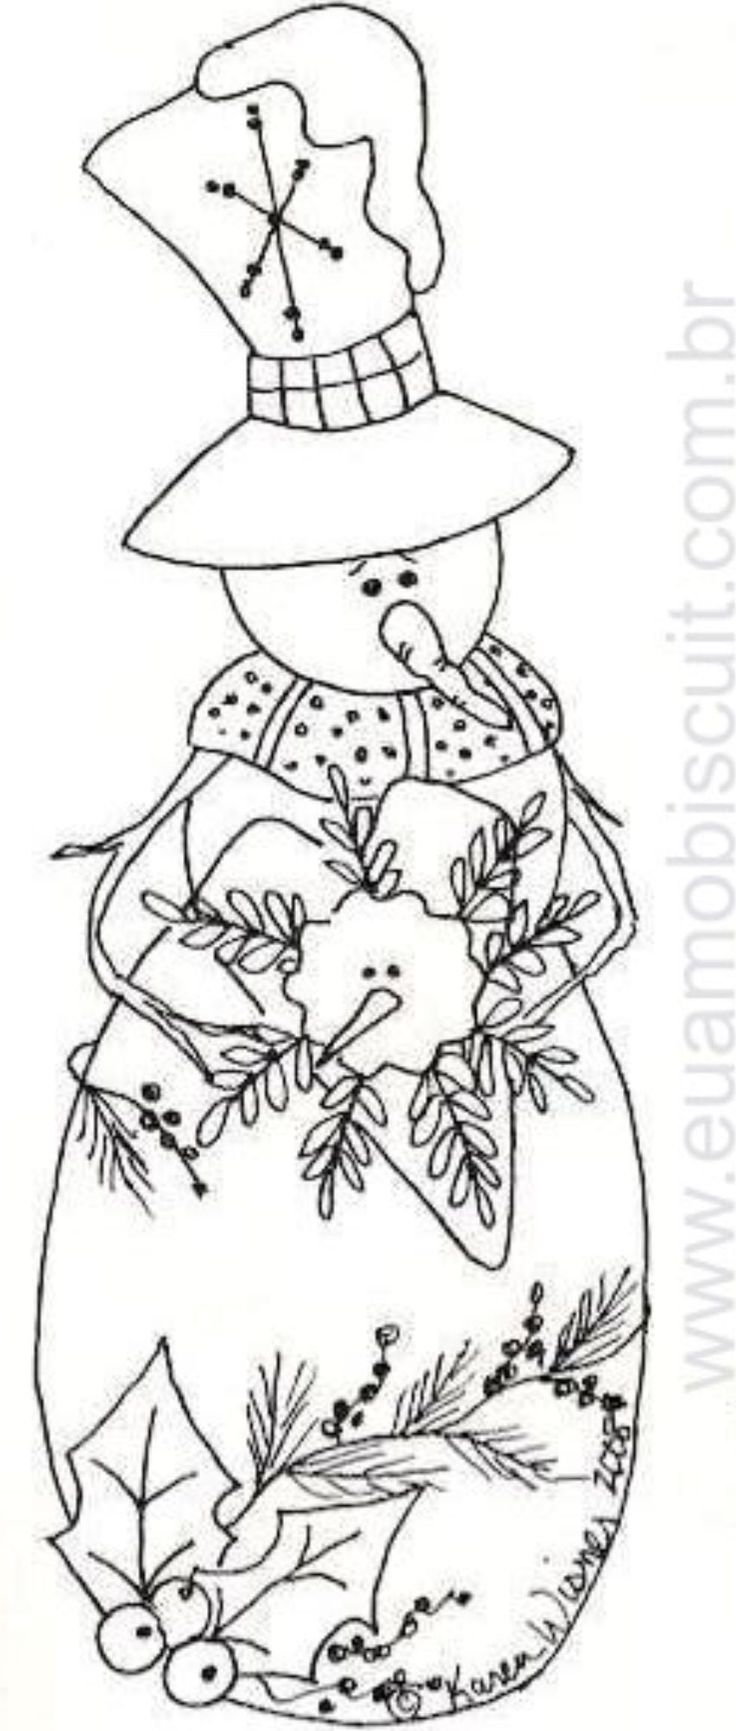 prmitive coloring pages - photo#26